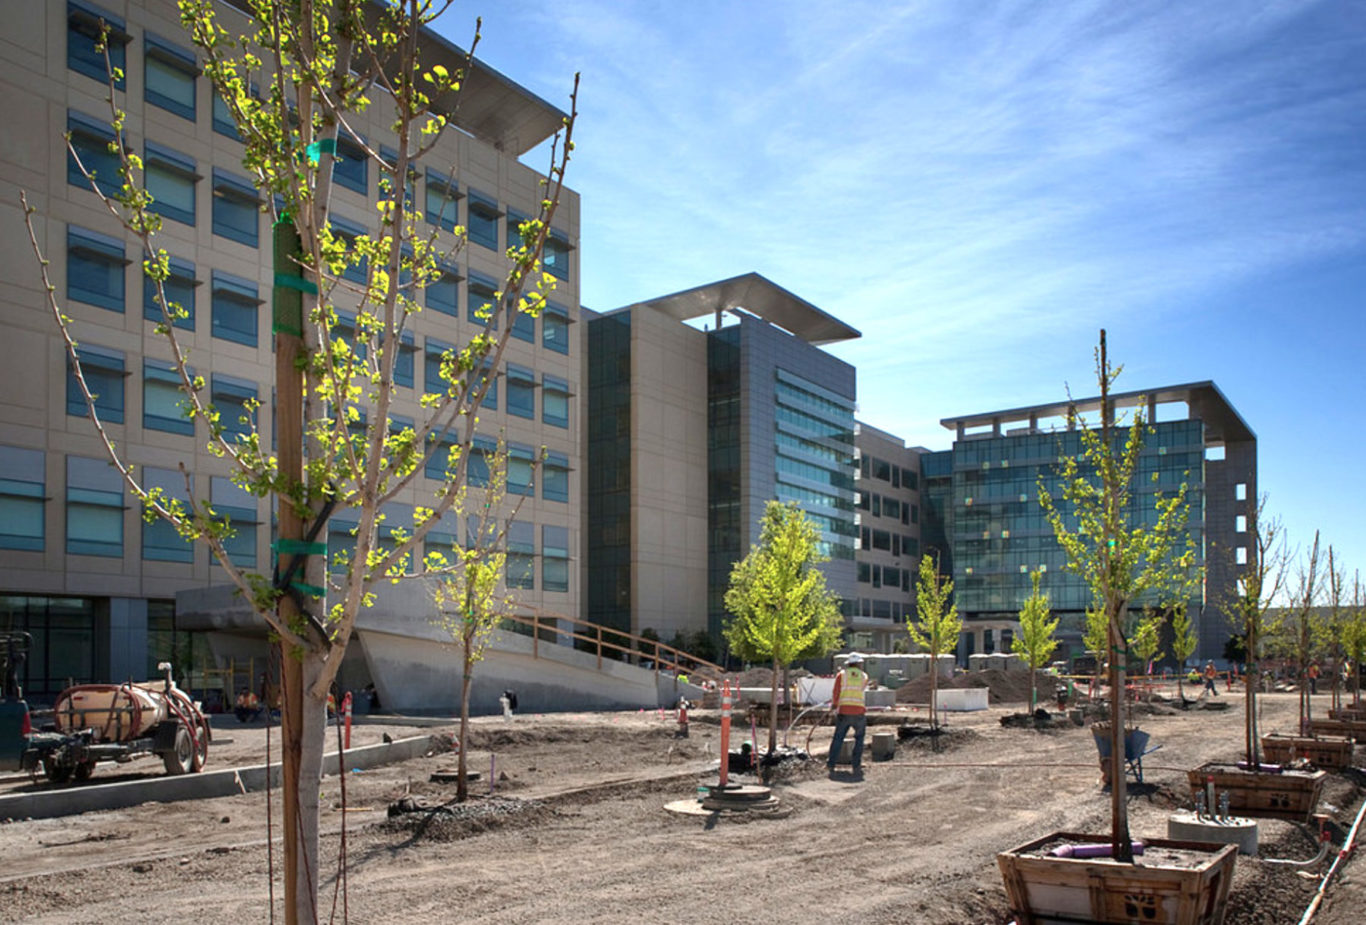 Photo of a hospital building under construction with landscaping being installed